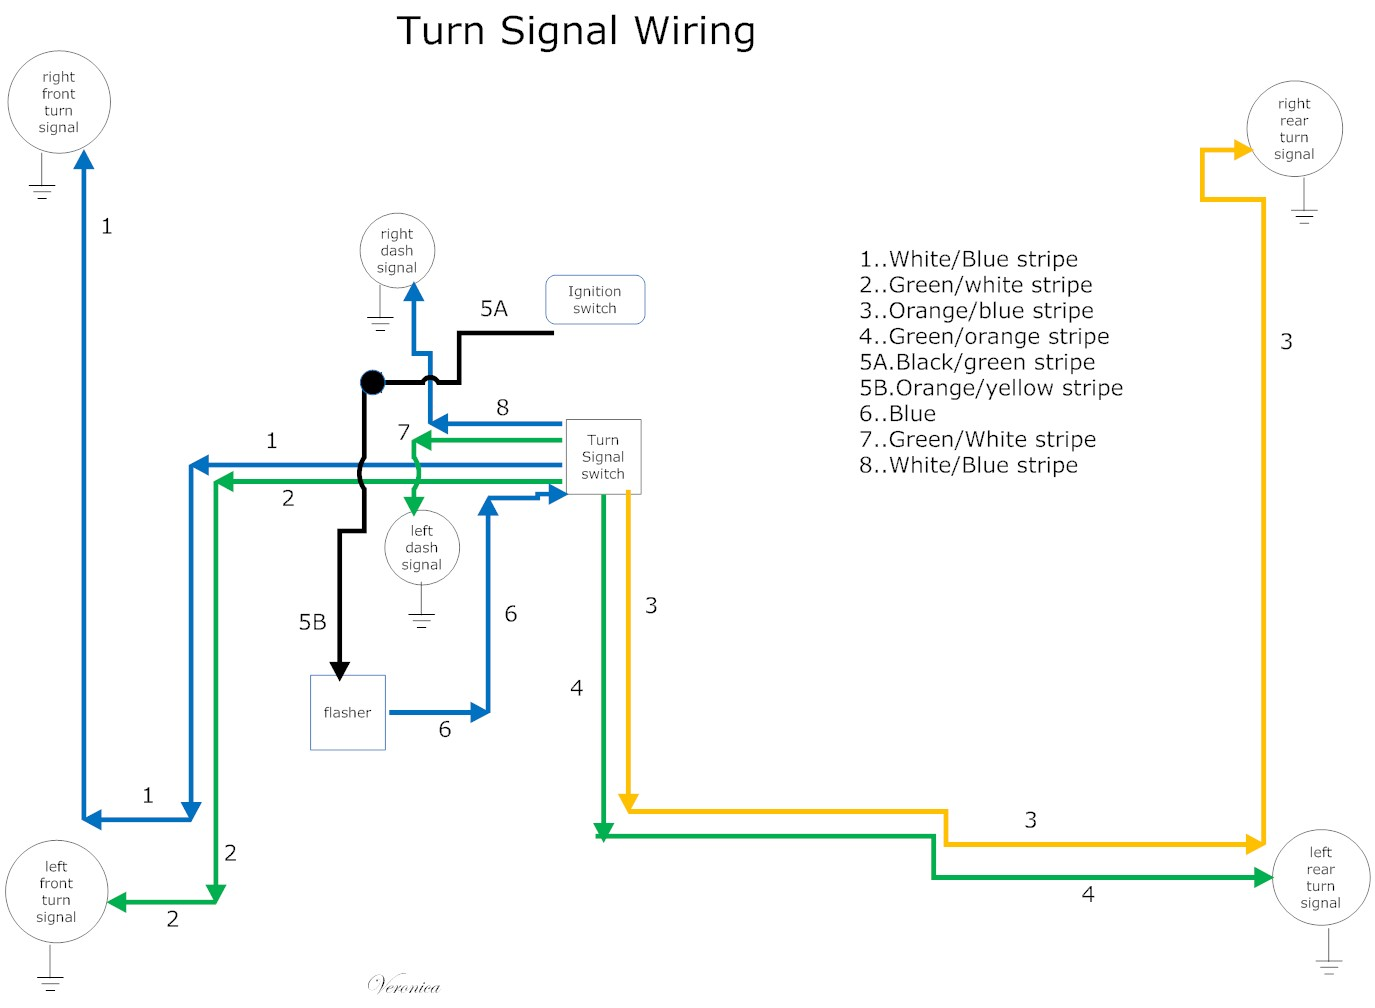 Turn+signal+Wiring the care and feeding of ponies 1965 1966 mustang turn signal car flasher wiring diagram at gsmx.co